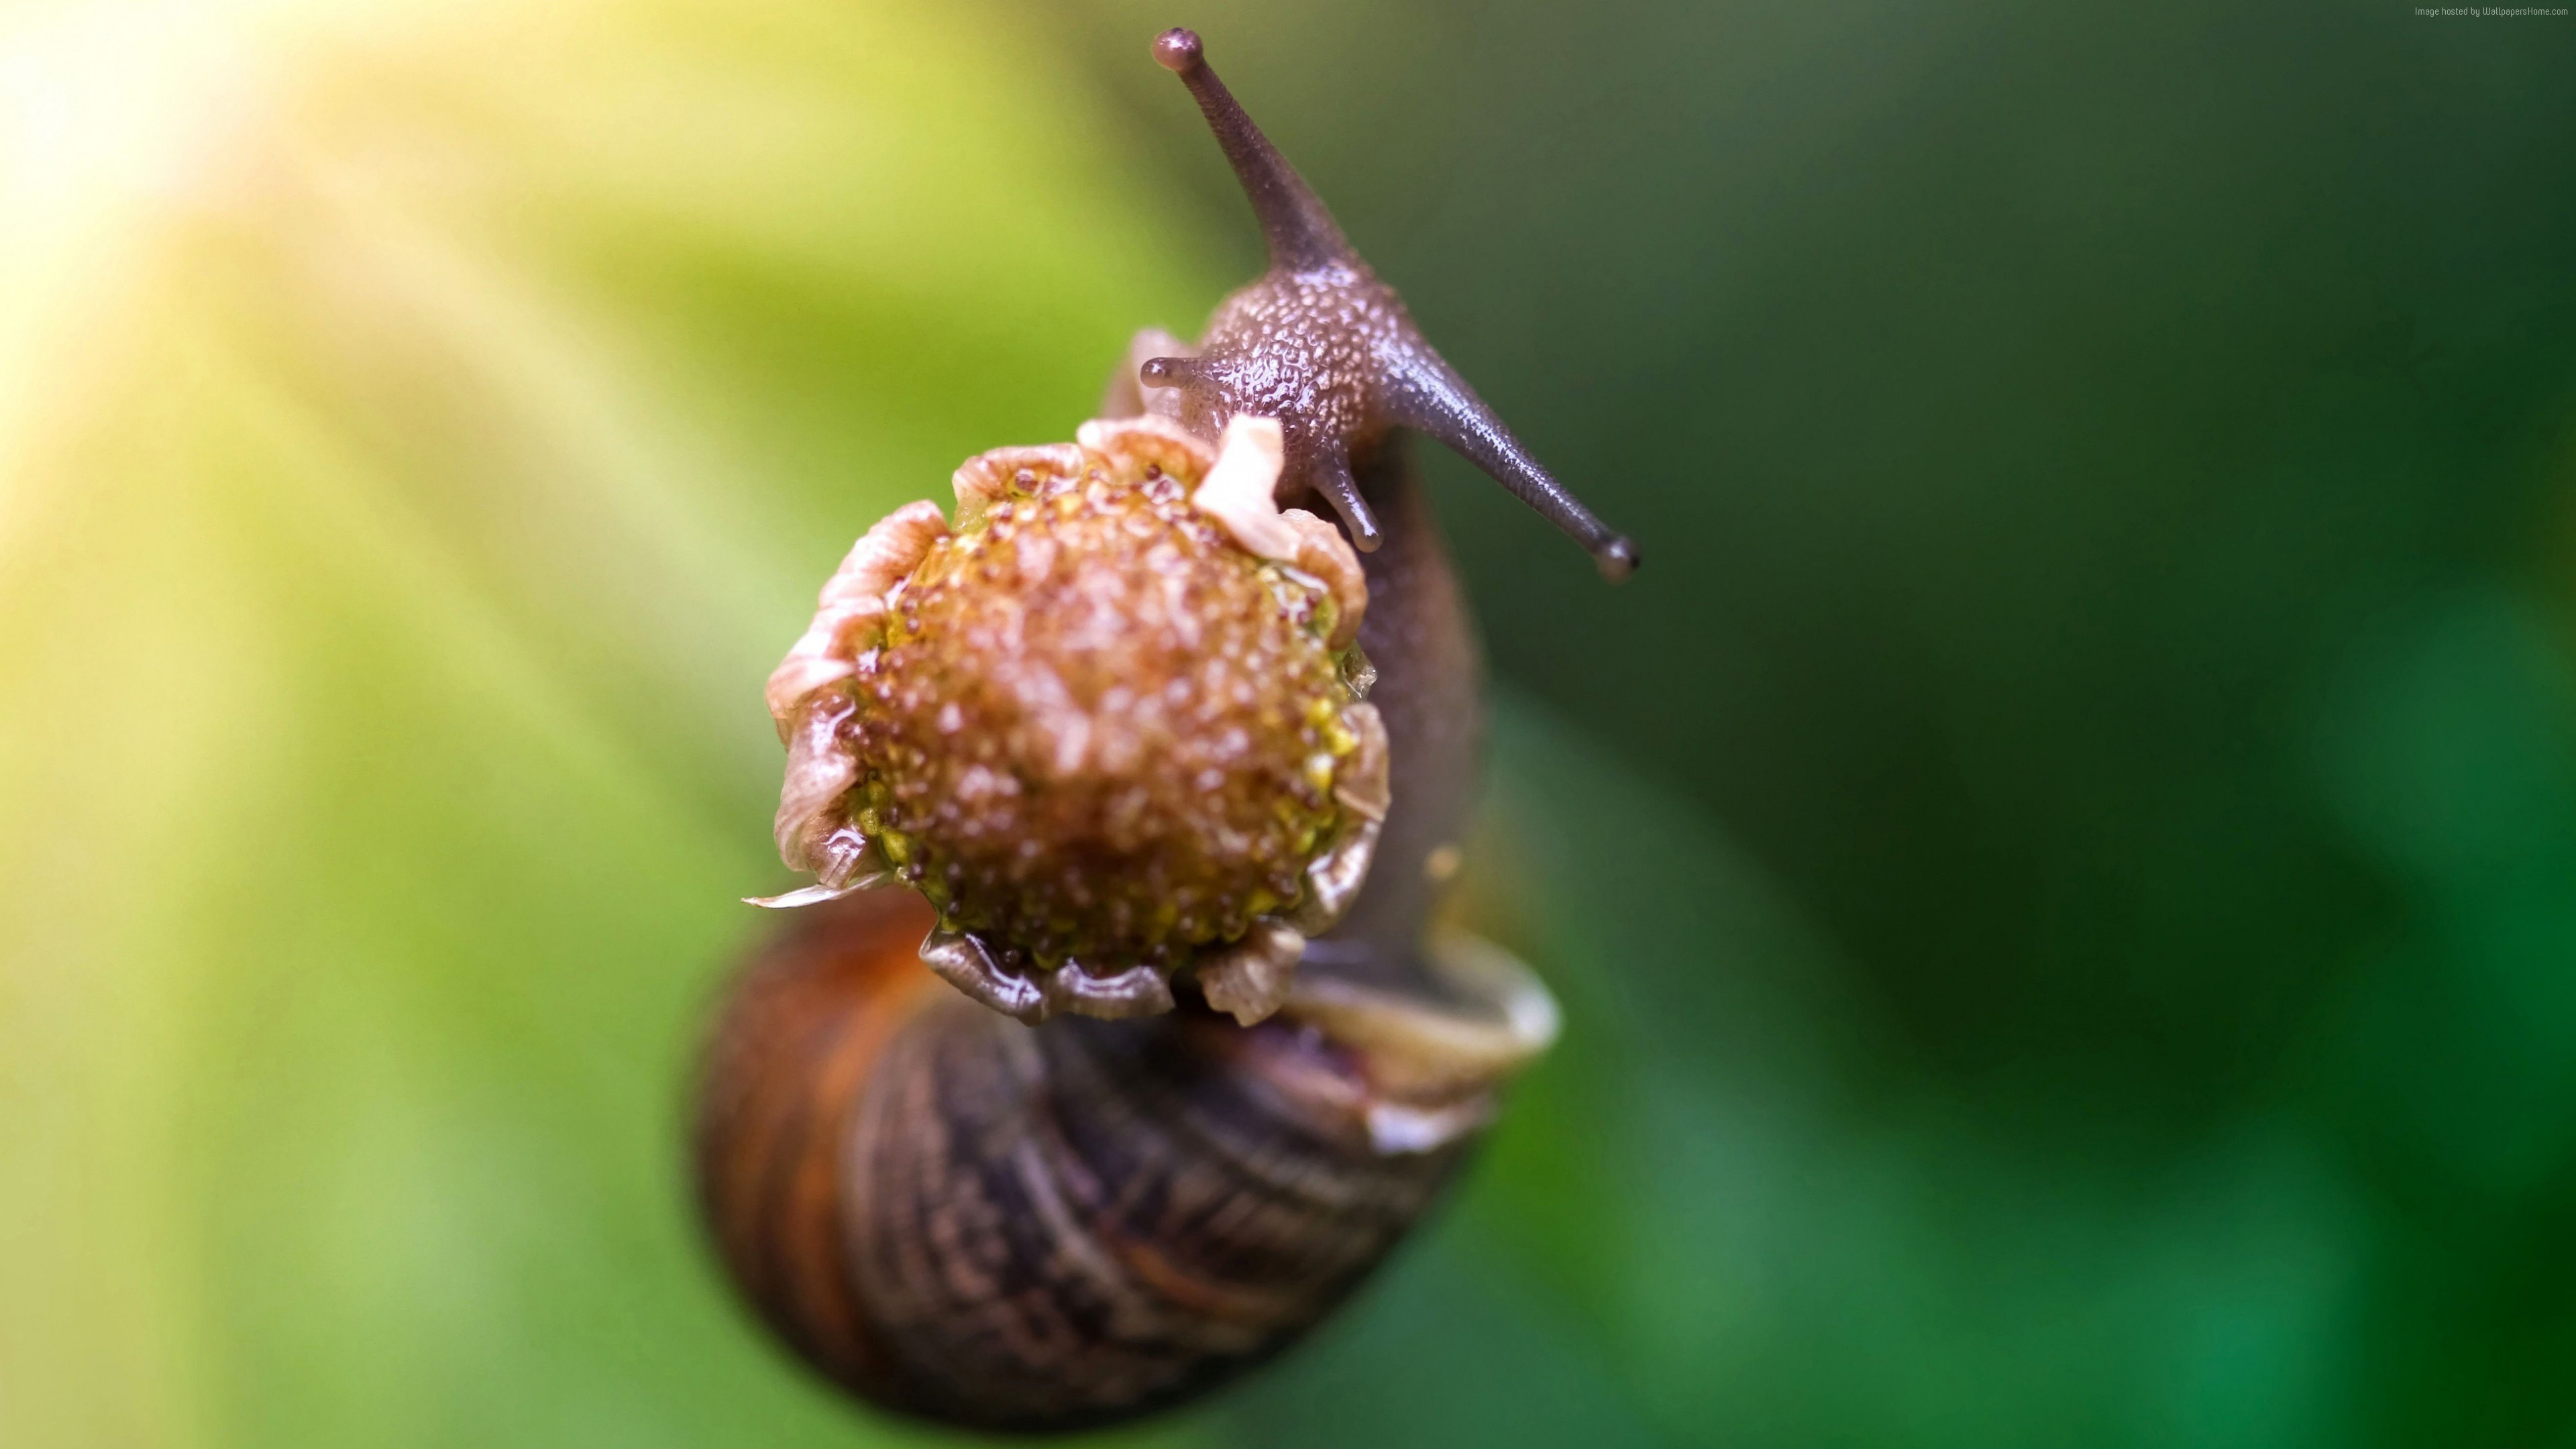 Wallpaper snail, eating flower, green background, nature, Animals